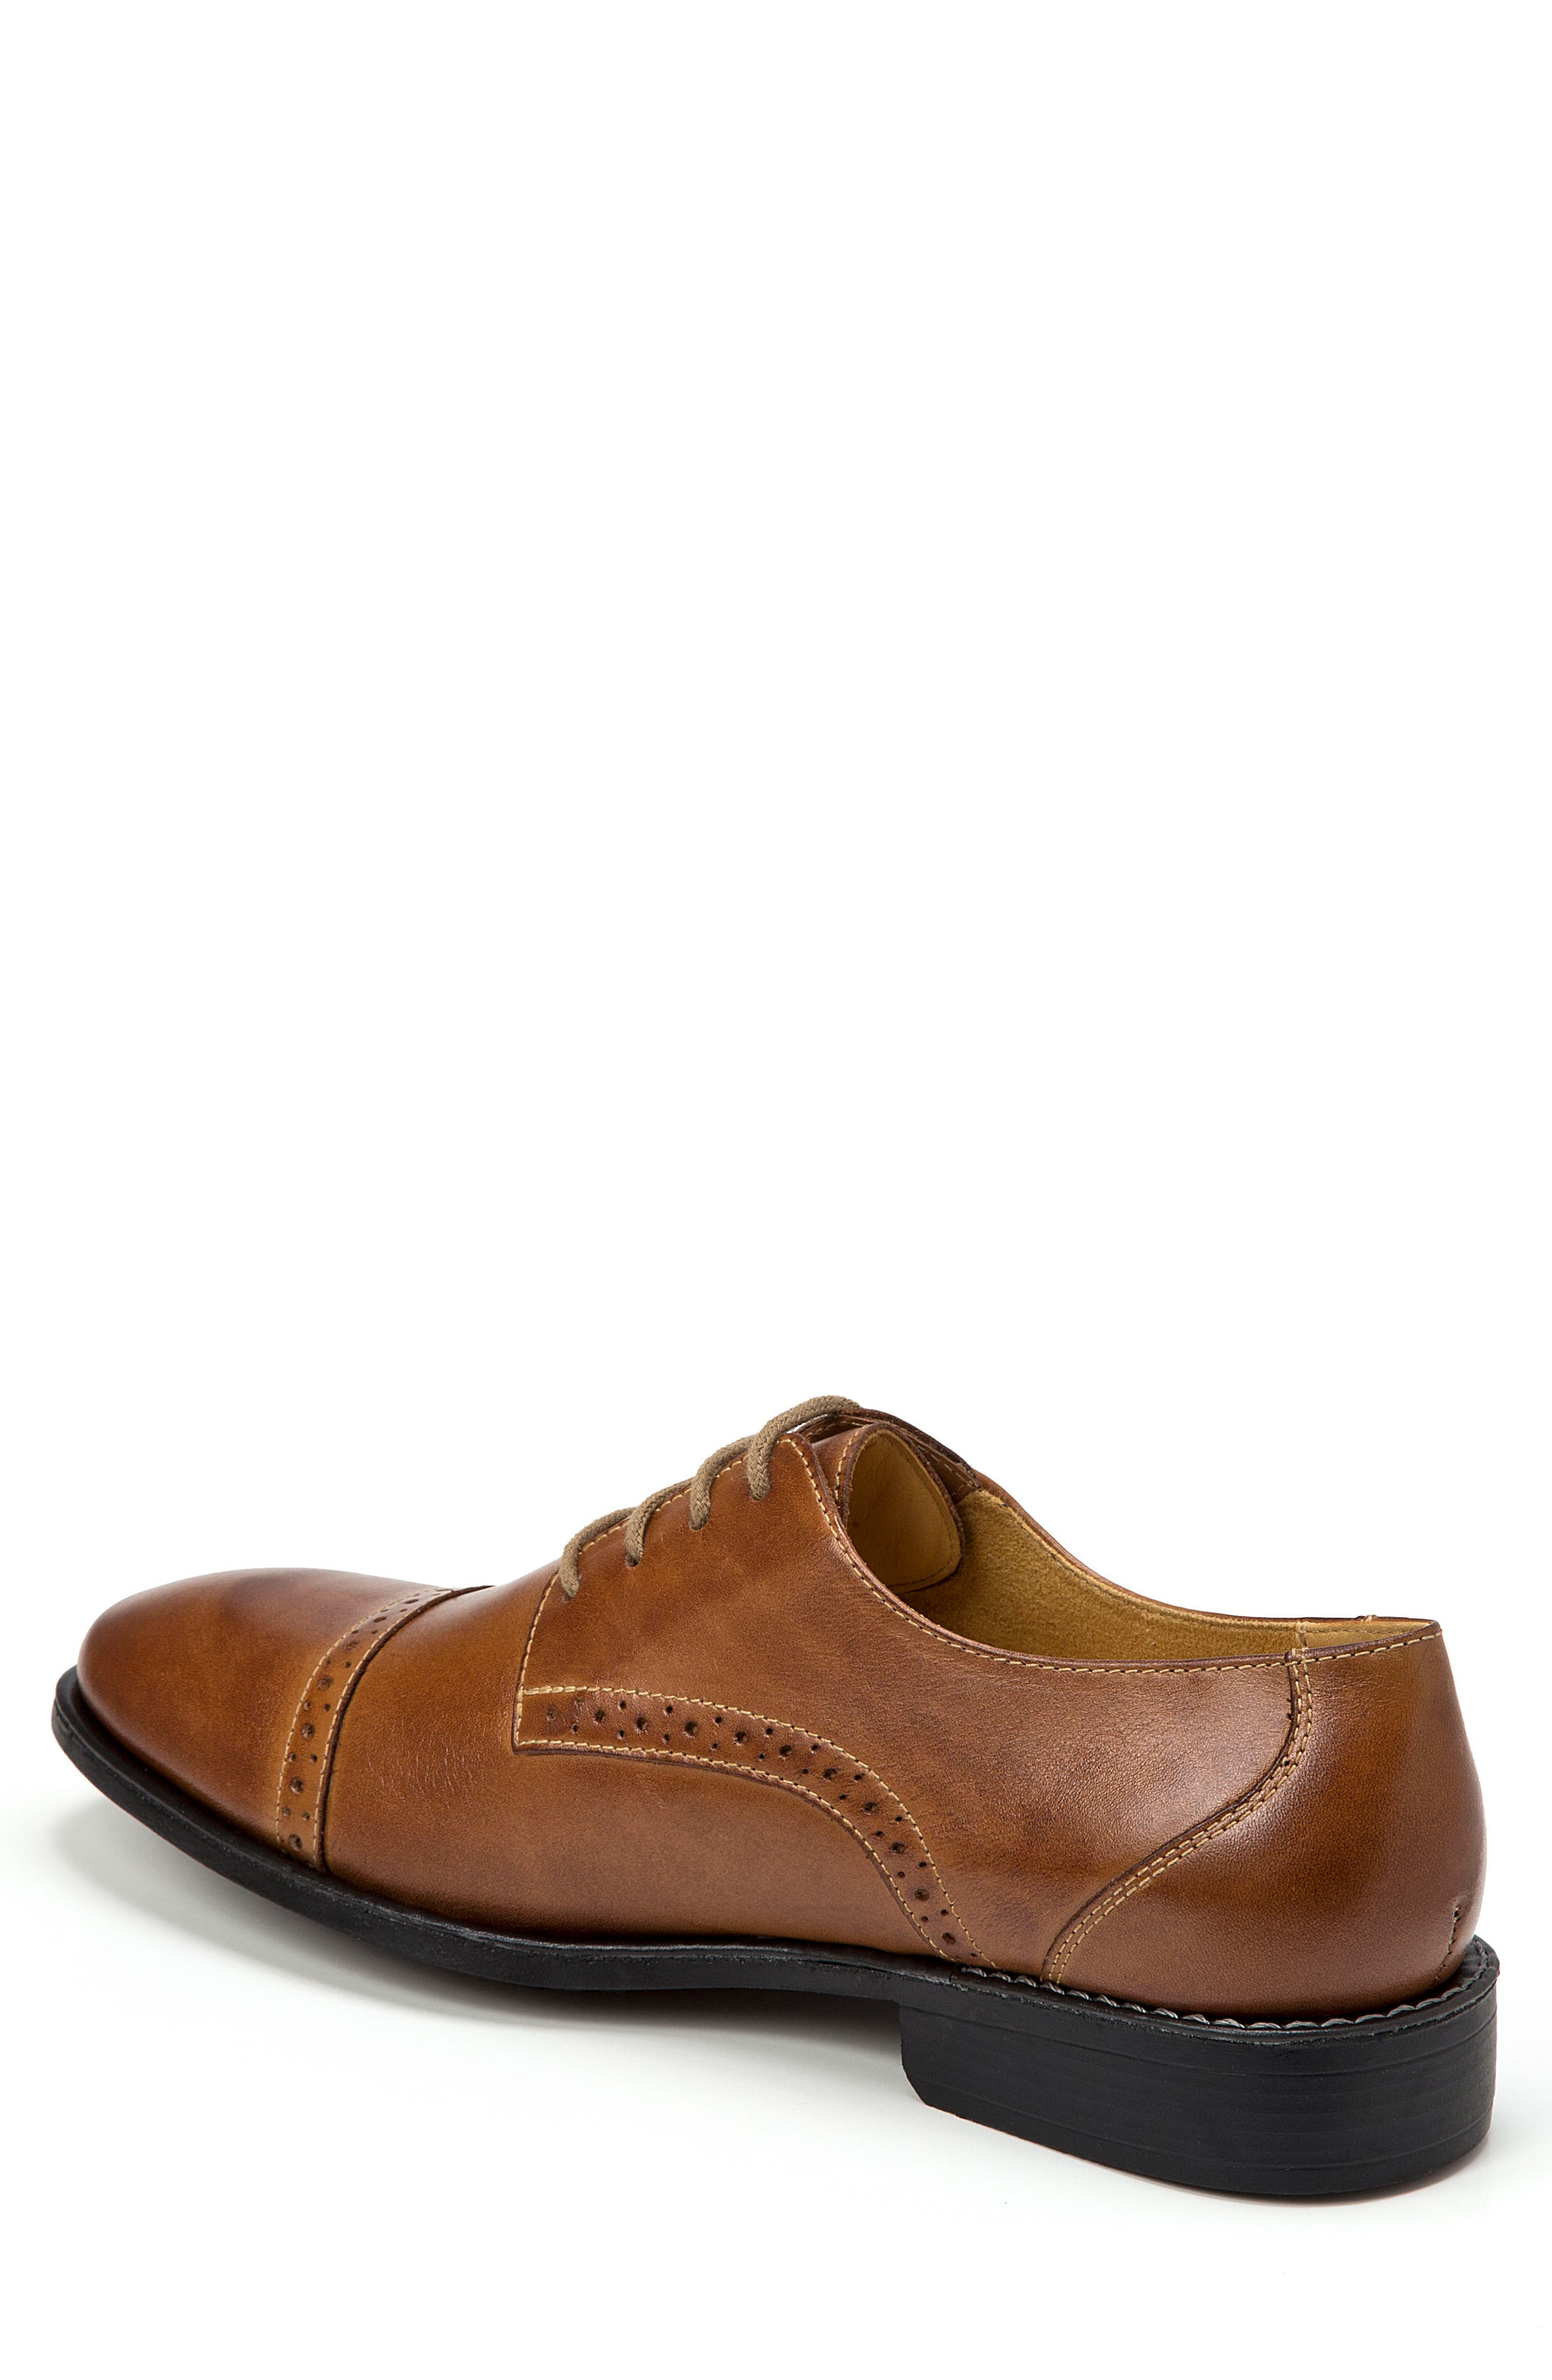 Elbert Cap Toe Derby,                             Alternate thumbnail 2, color,                             Tan